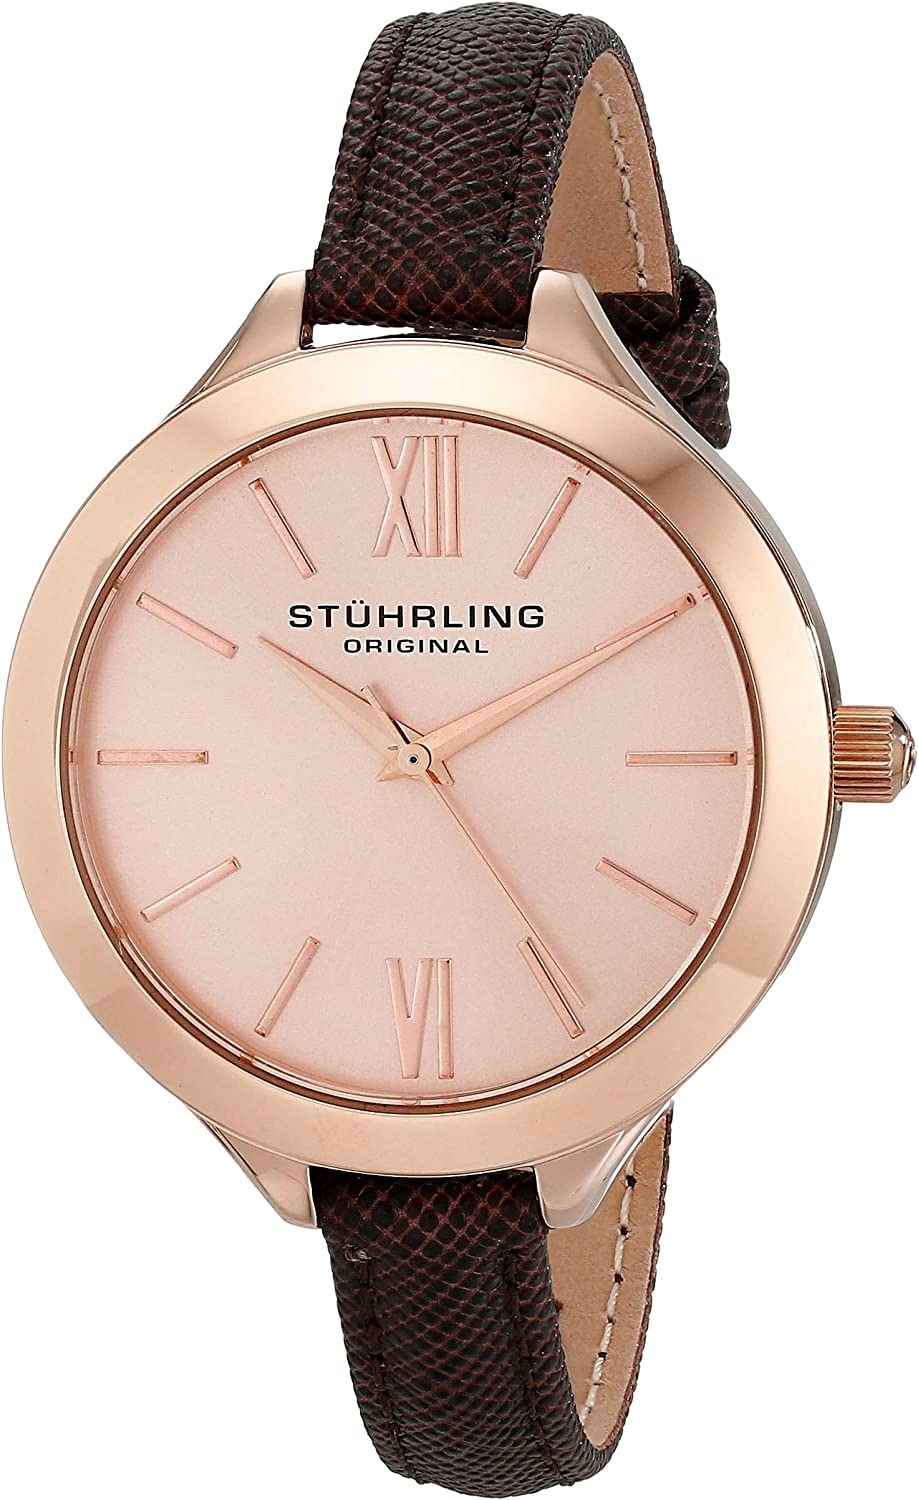 Stuhrling Original Women s 975.04 Vogue Rose Gold-Tone Watch with Brown Leather Band